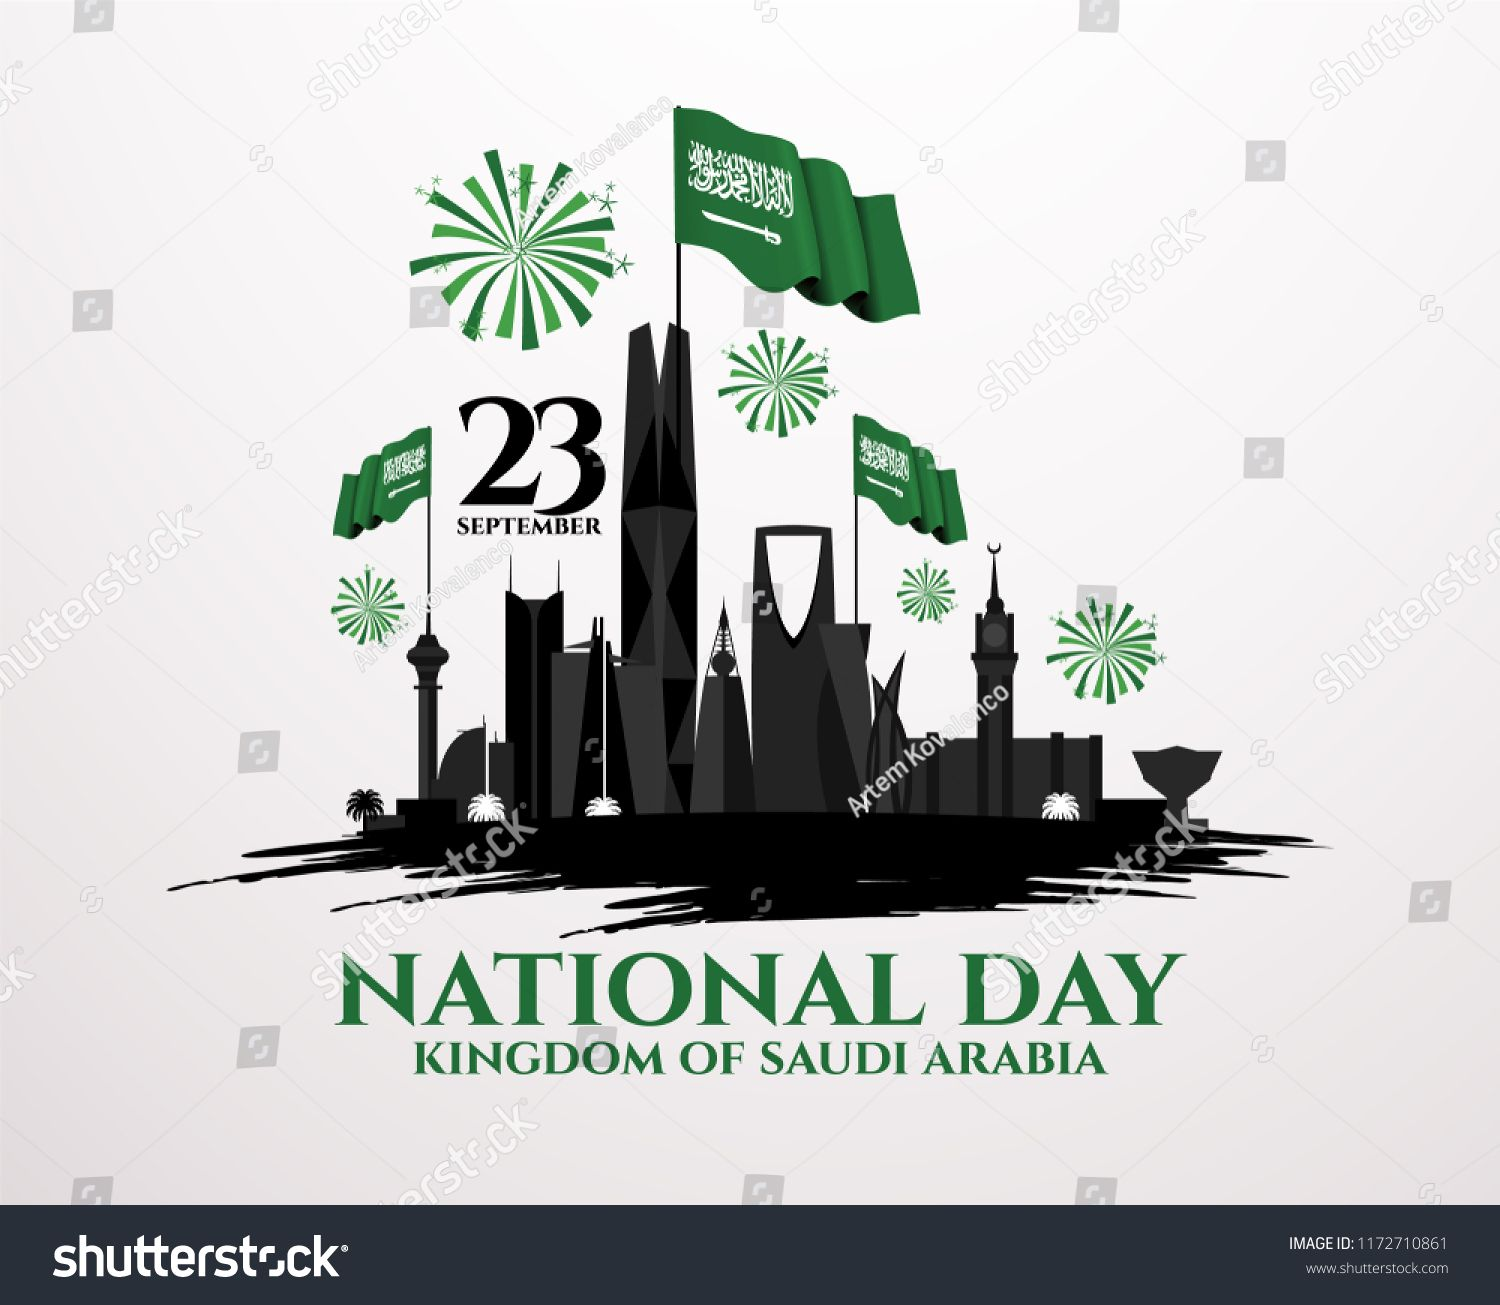 Vector Illustration The National Holiday Of The Kingdom Of Saudi Arabia Is Celebrated On September 23 Vector Illustration Royalty Free Photos Graphic Design